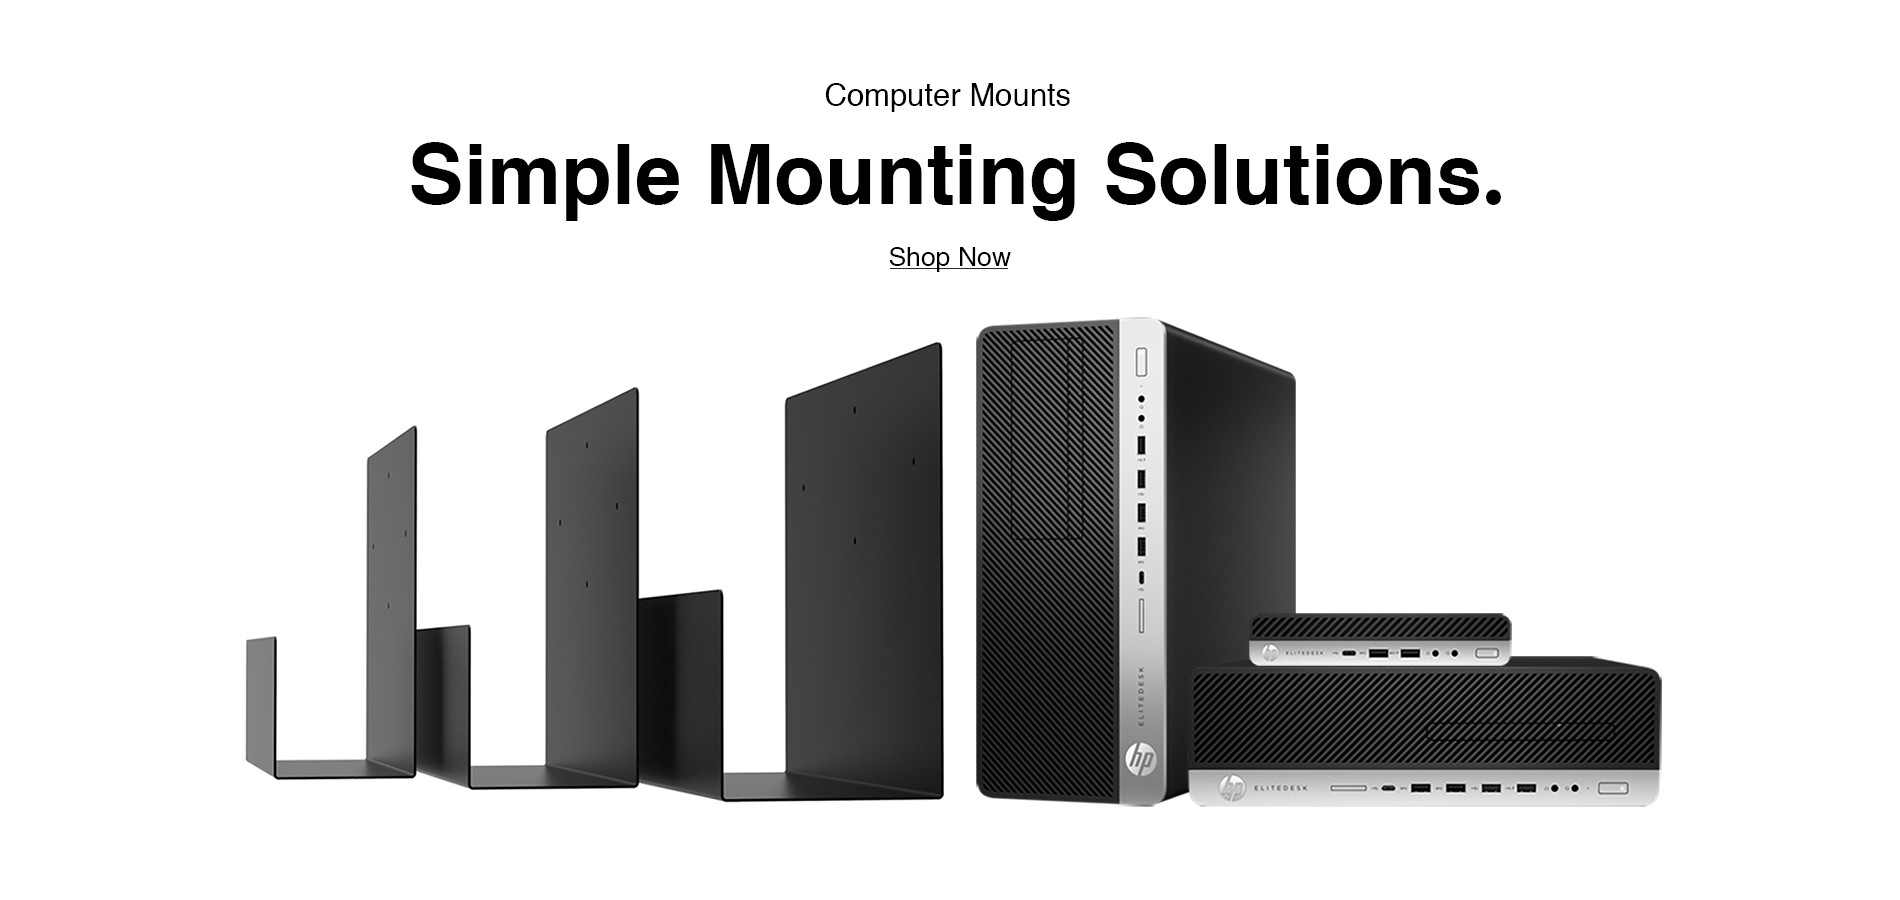 Oeveo Computer Mounts